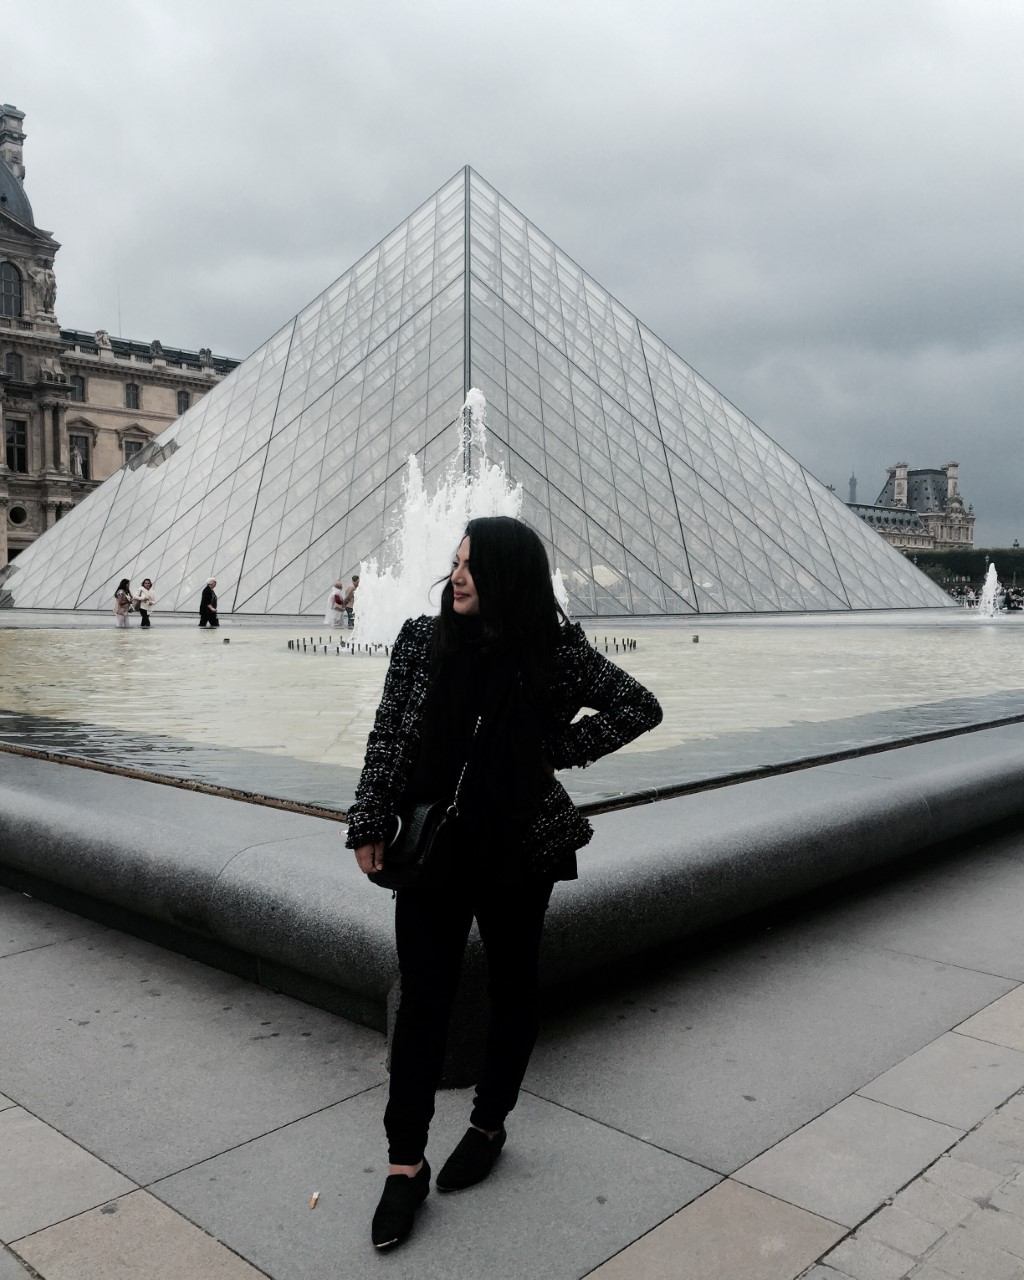 MUSEE DU LOUVRE - The King of the museums! A beautiful place to appreciate art while spending hours to explore this majestic place!